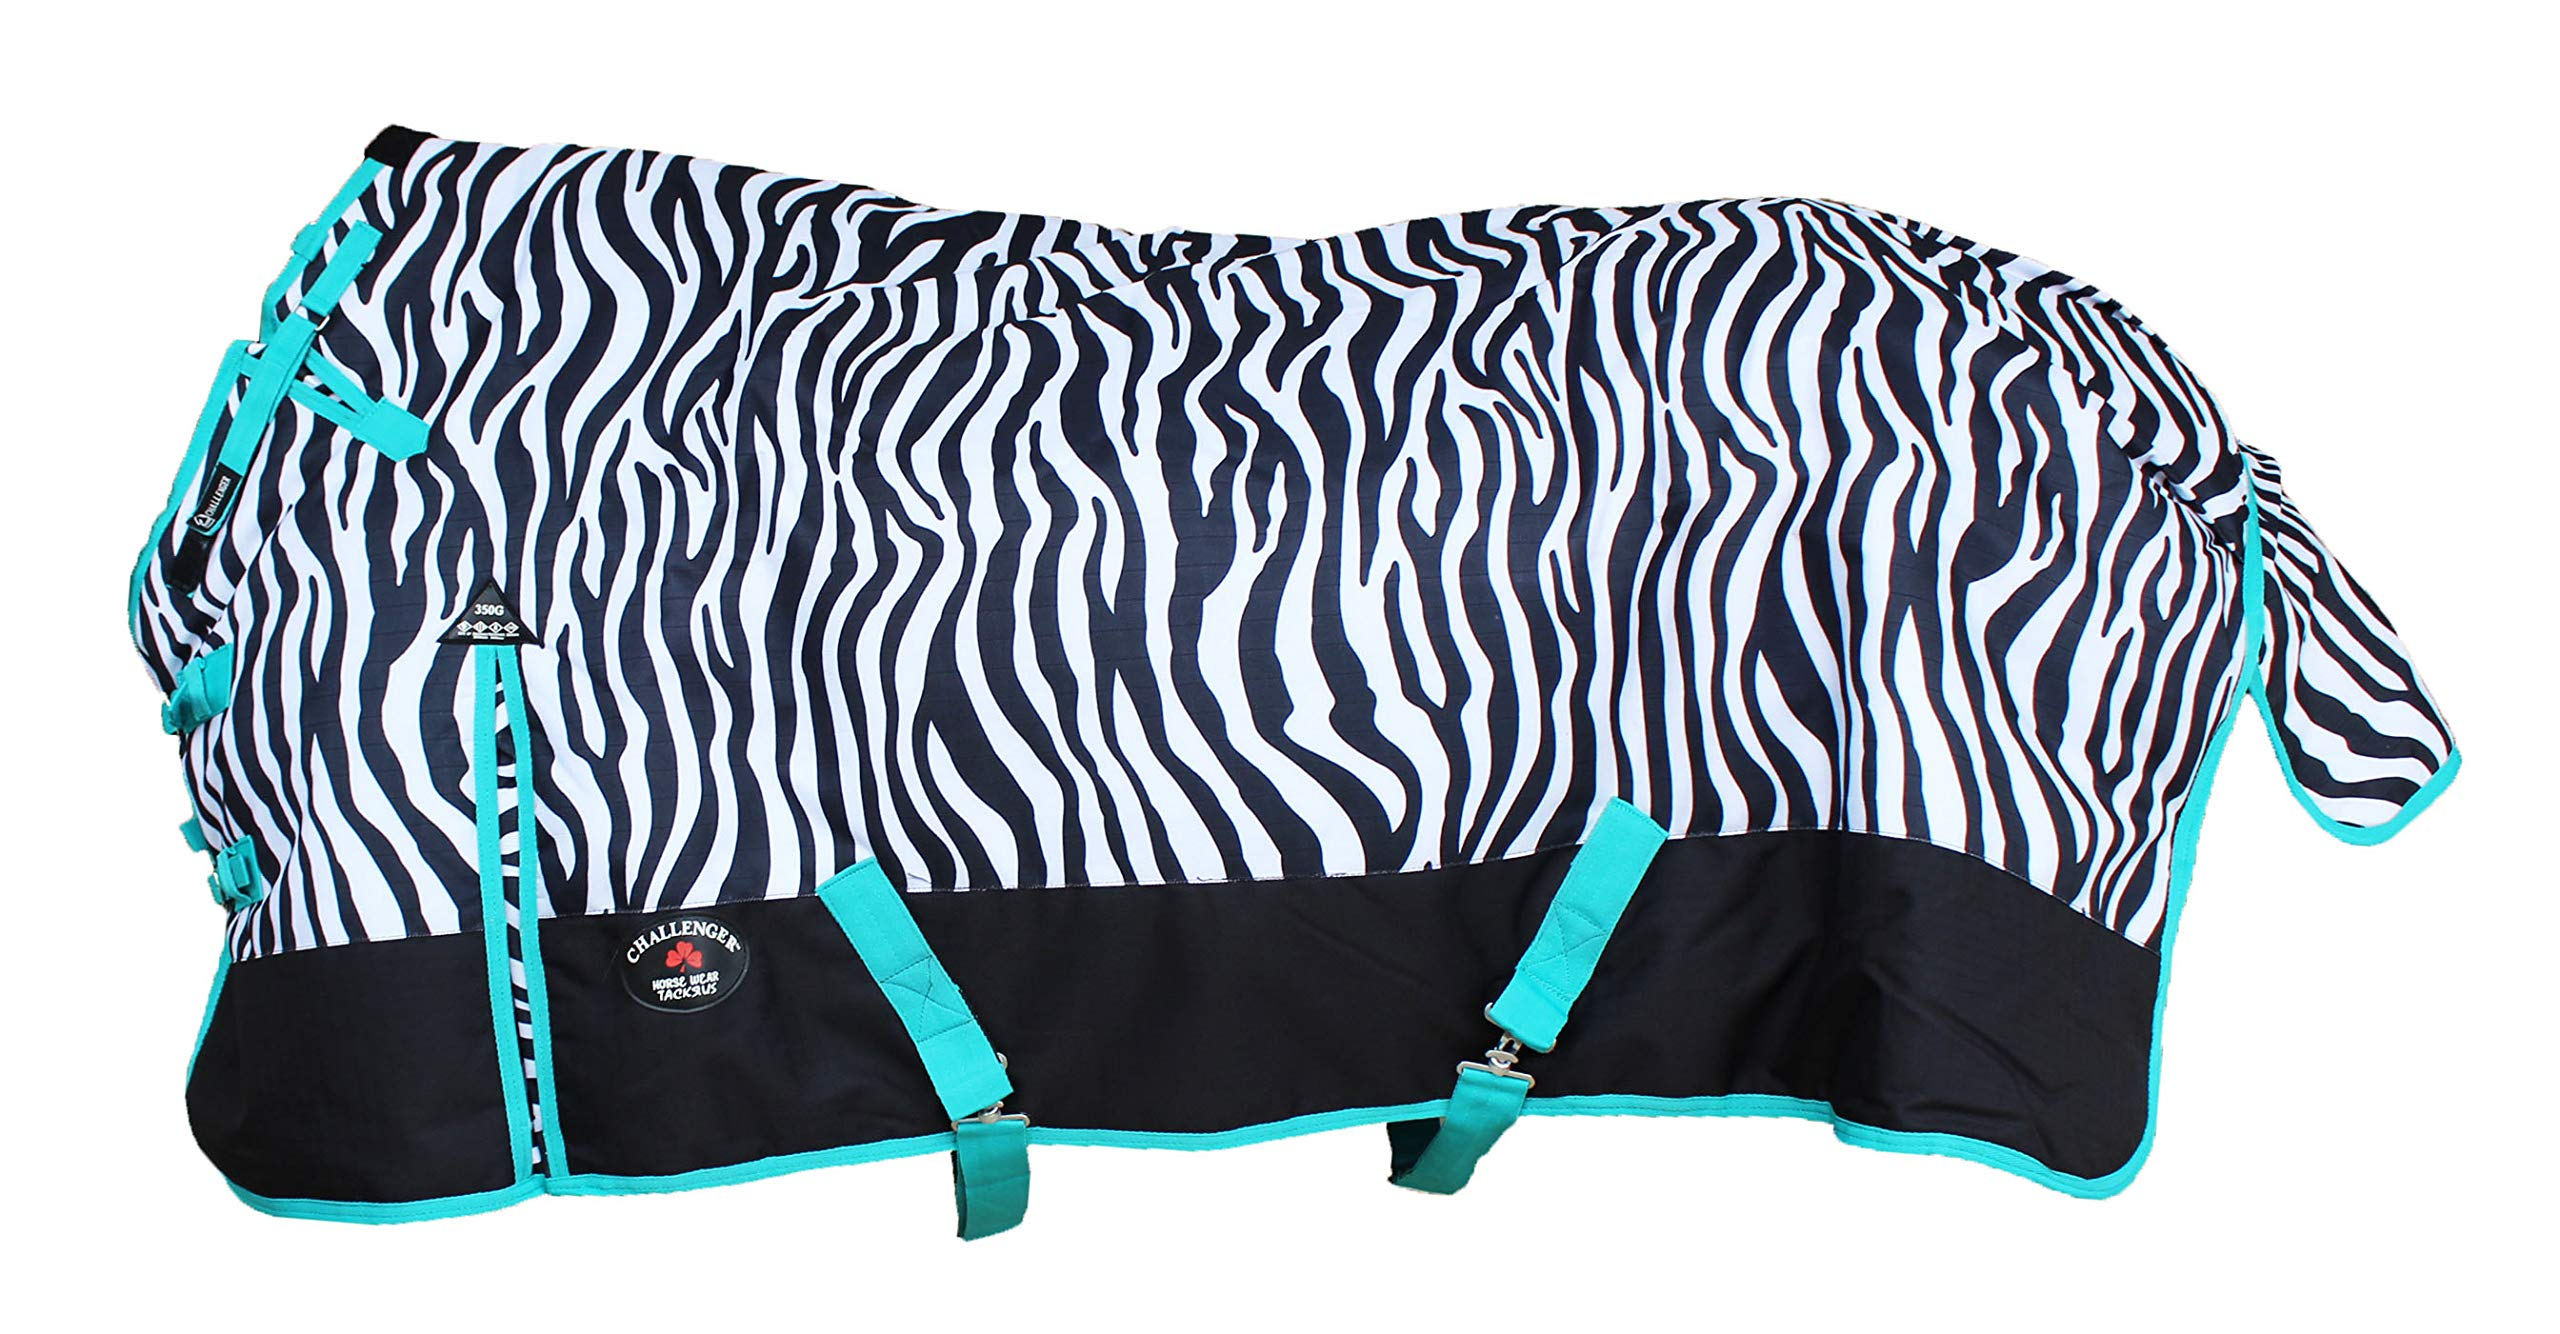 CHALLENGER 76'' 1200D Turnout Waterproof Horse Tough Winter Blanket Heavy Teal 547G by CHALLENGER